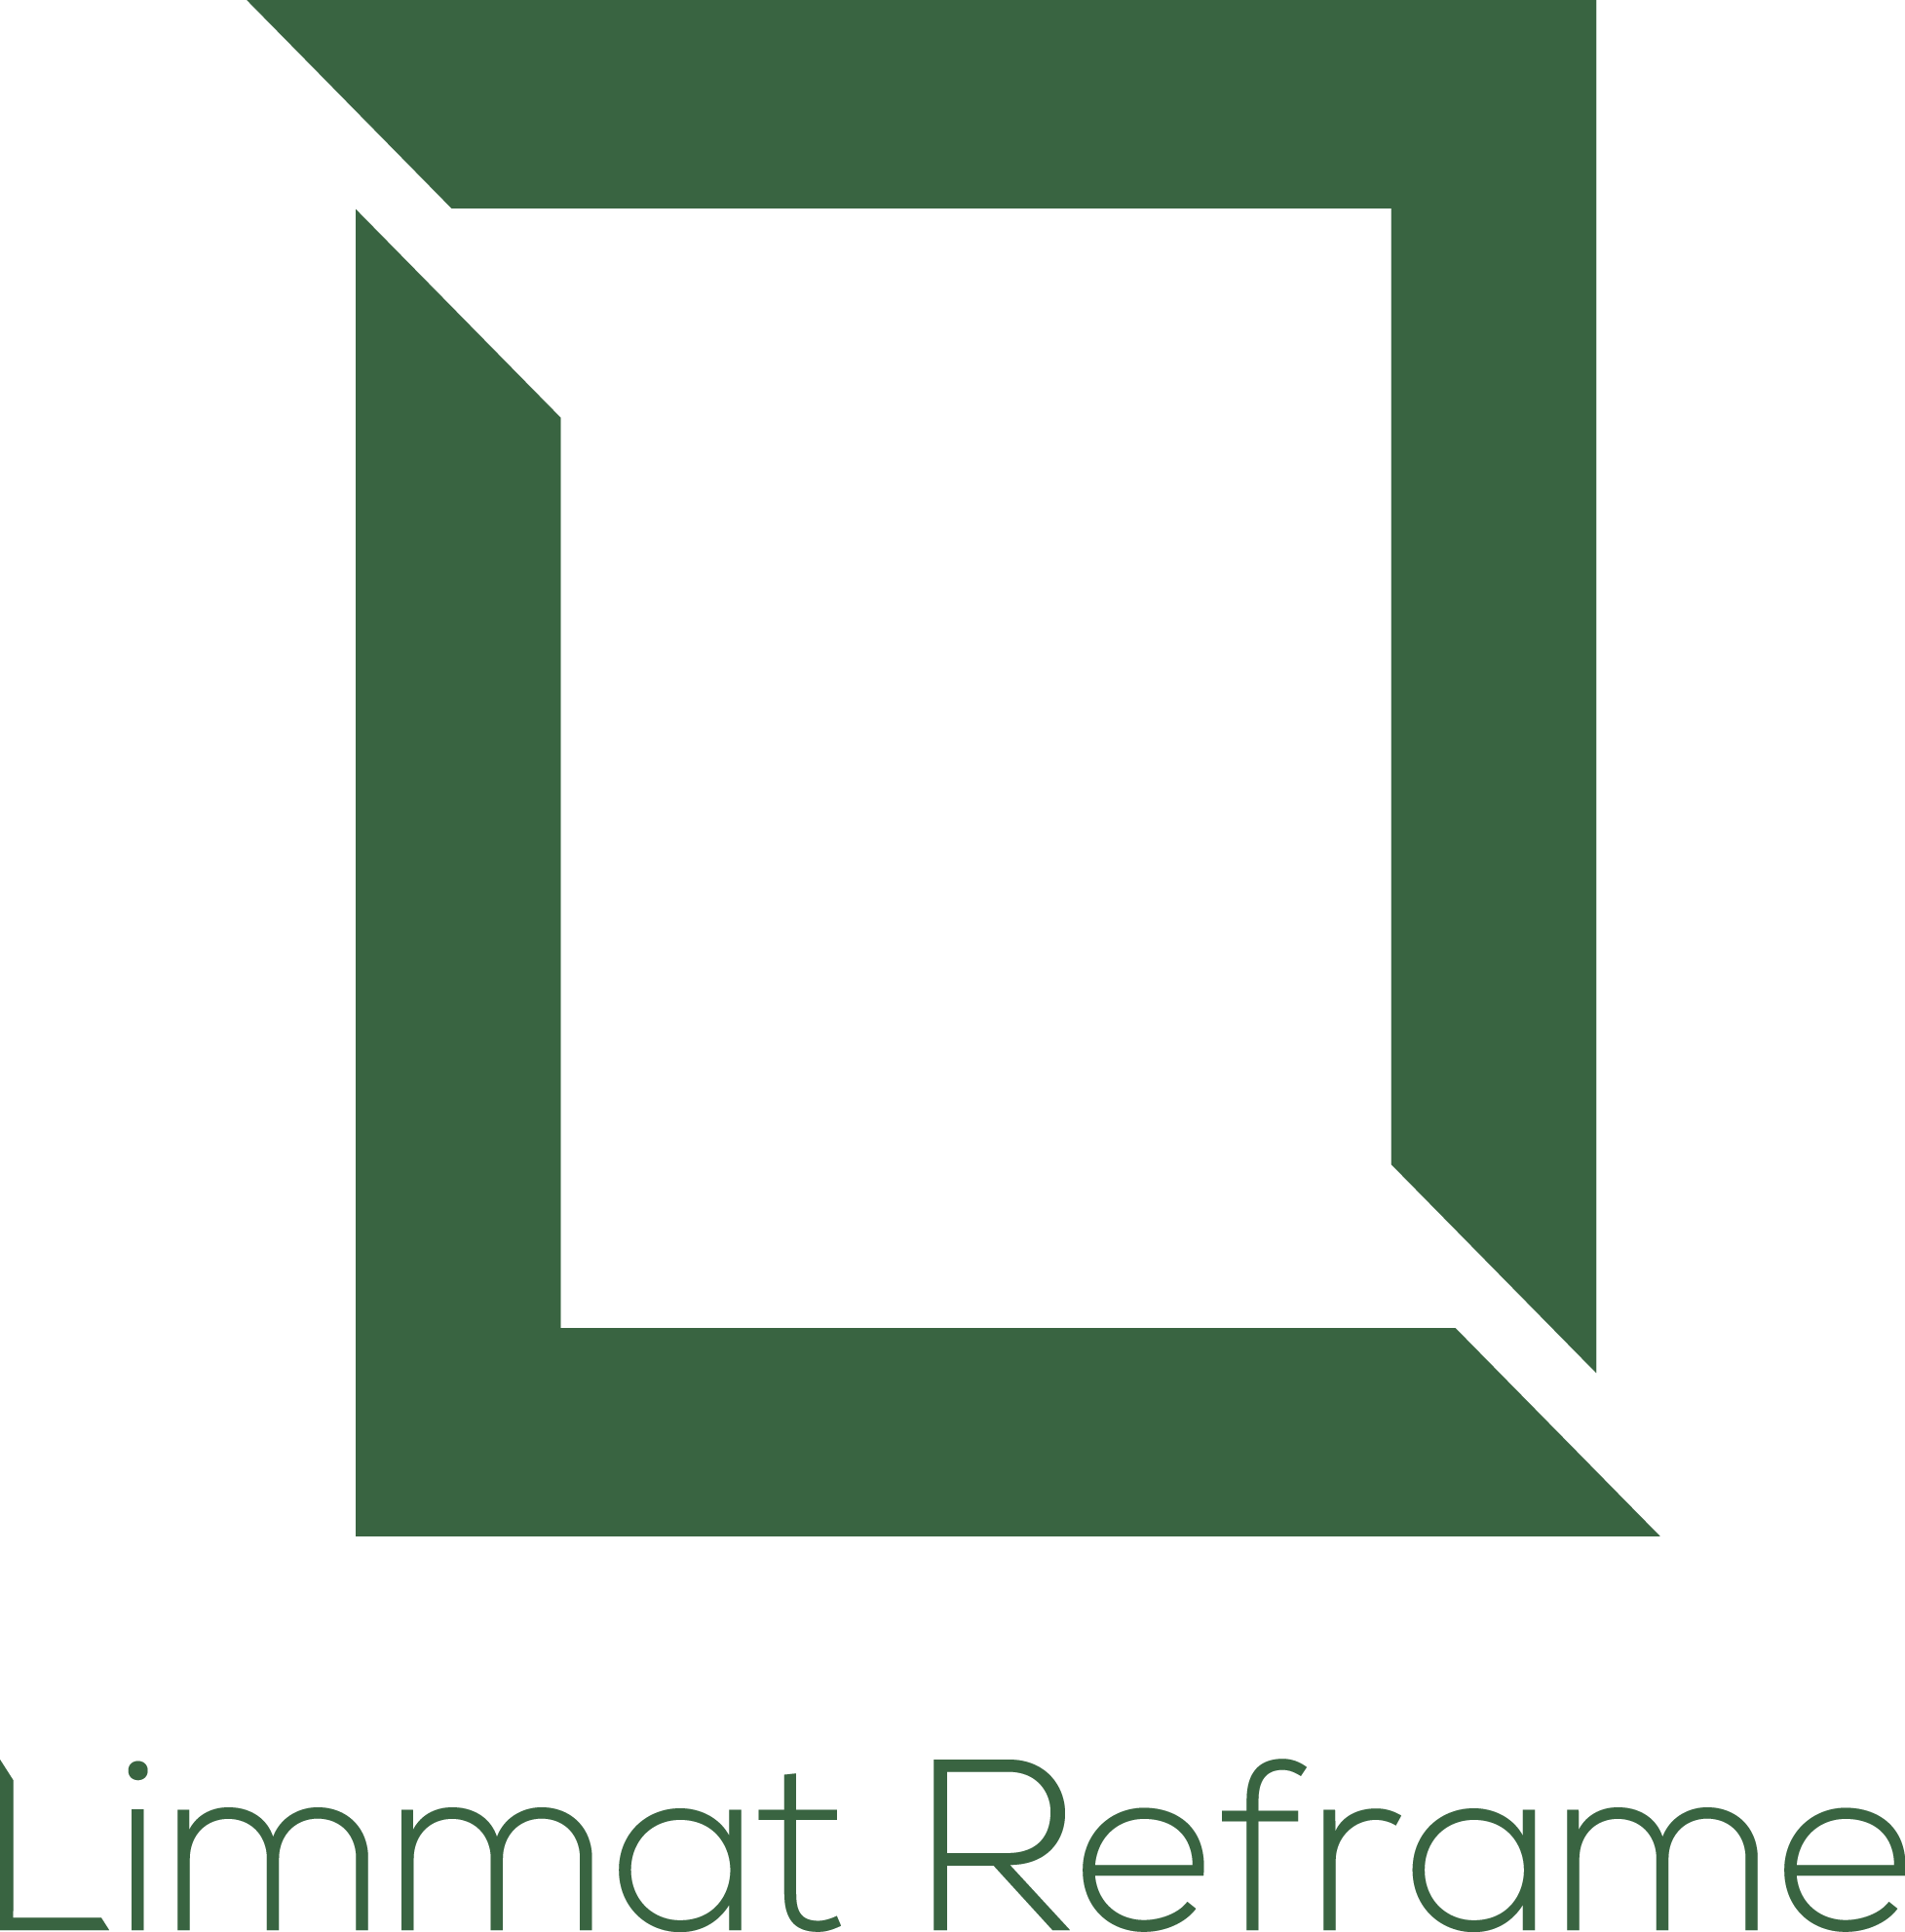 The Limmat Reframe Logo - representing a a reframe happening